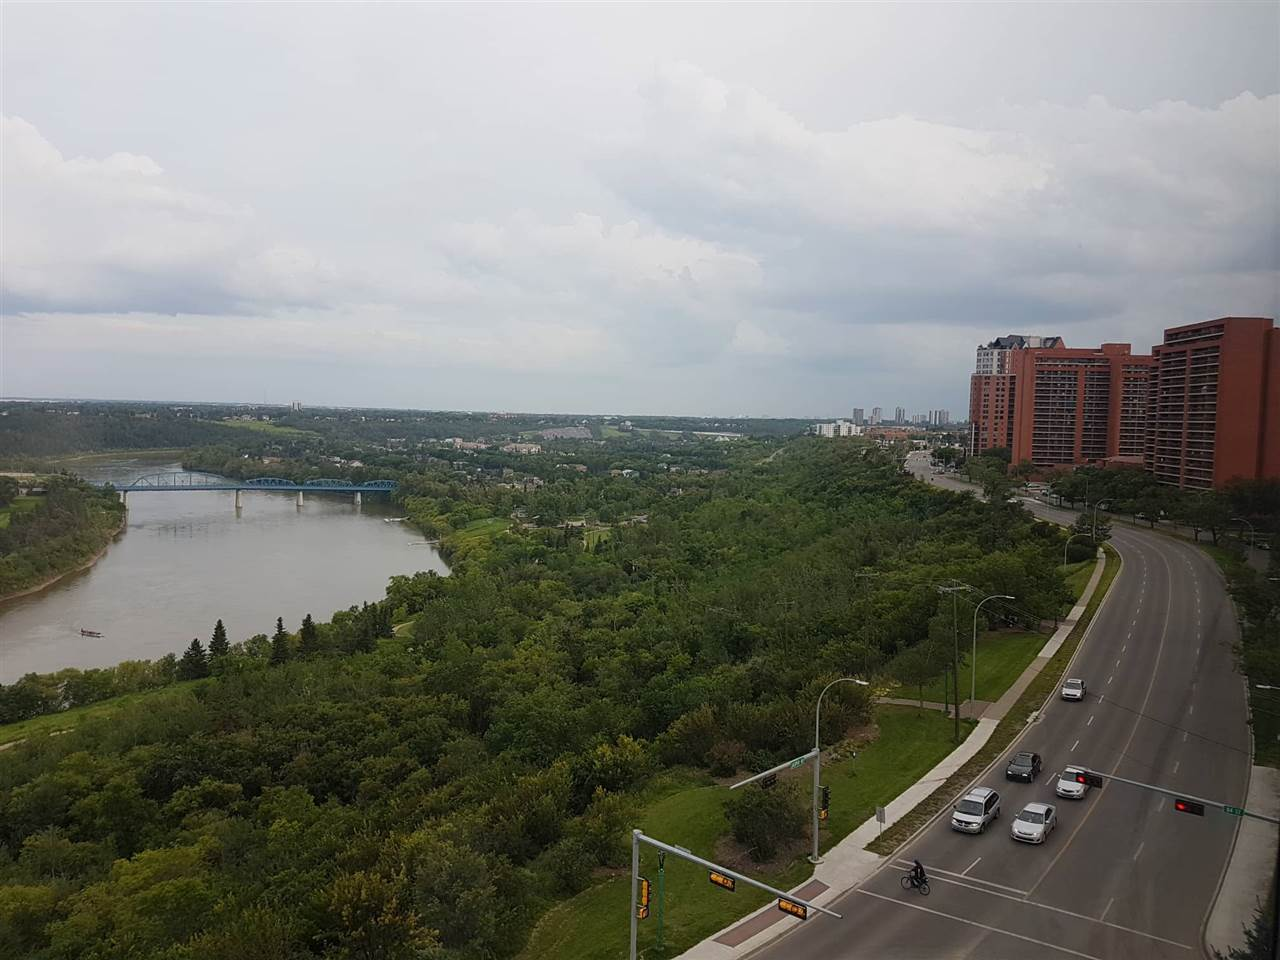 BEAUTIFUL CONDO!  GORGEOUS RIVER VALLEY VIEW , 11th floor concrete building condo on Jasper Avenue! This spacious 1 bedroom, 1 bath home is steps away from the river valley trails, Commonwealth L.R.T. and just minutes to the downtown core & new Ice District. AIR-CONDITIONED building which includes ALL UTILITIES AND CABLE. CENTRAL VACUUM, IN-SUITE LAUNDRY AND STORAGE ROOM. Other amenities include FITNESS CENTER, PARTY ROOM,BBQ DECK AREA, and SUN ROOM LIBRARY READING ROOM . This unit comes with 1 TITLED UNDERGROUND HEATED PARKING STALL# 132 and 2 visitor parking passes.  Comes with all appliances, Fridge,Stove,Dishwasher,Microwave and Window coverings. GREAT QUIET AND SECURED LIVING.